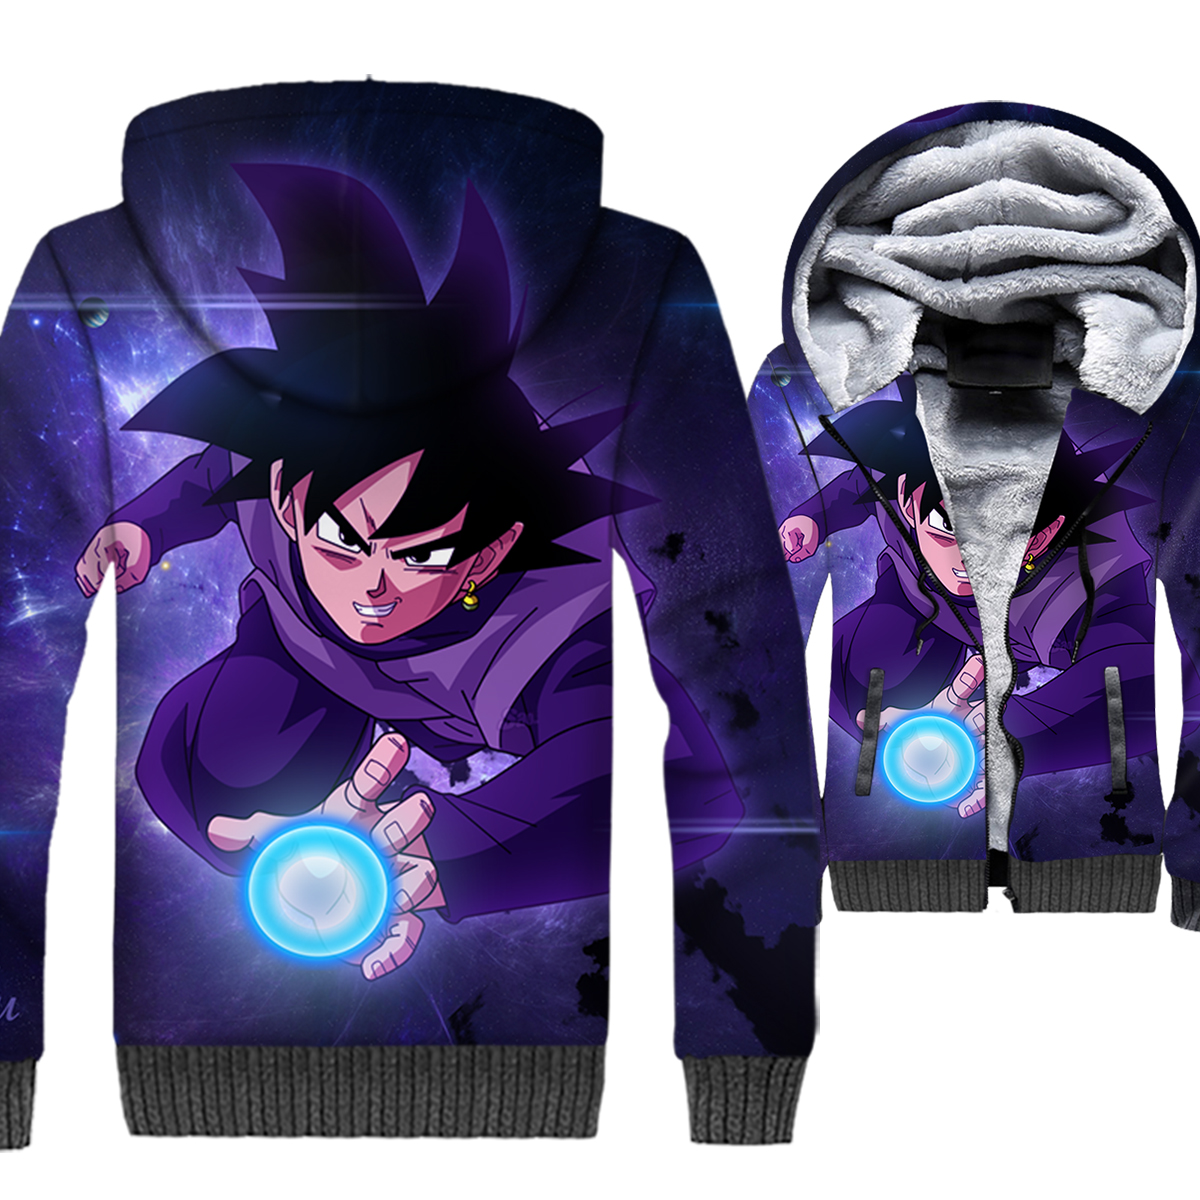 Dragon Ball Super Saiyan 3D Hoodie Men Japanese Anime Sweatshirt Cool Coat Winter Fleece Vegeta Trunks Jacket Black Streetwear